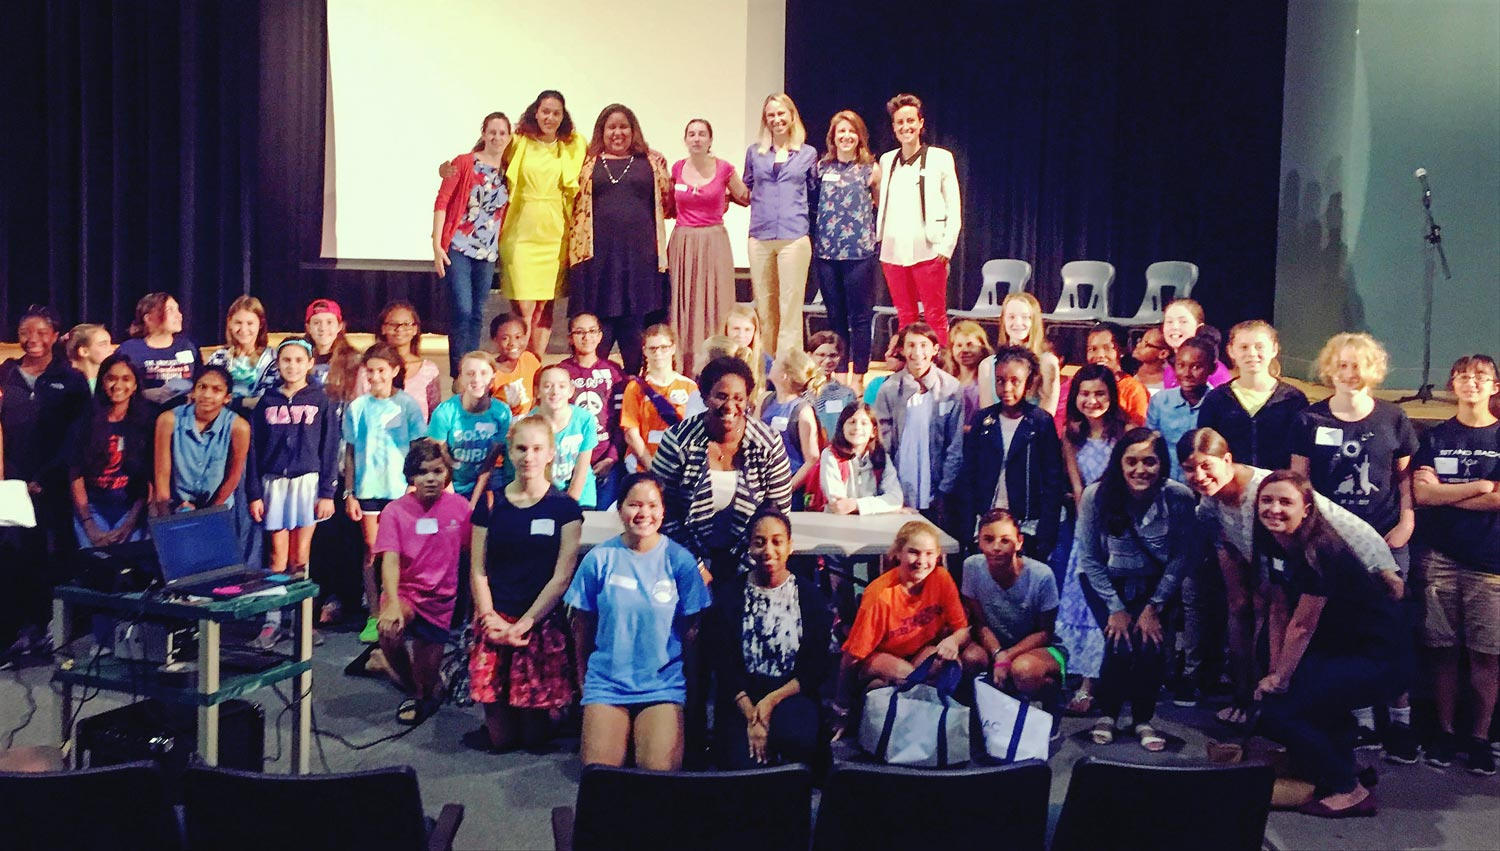 More than 150 girls joined local leaders to learn about careers in science, engineering, technology, entrepreneurship and more.